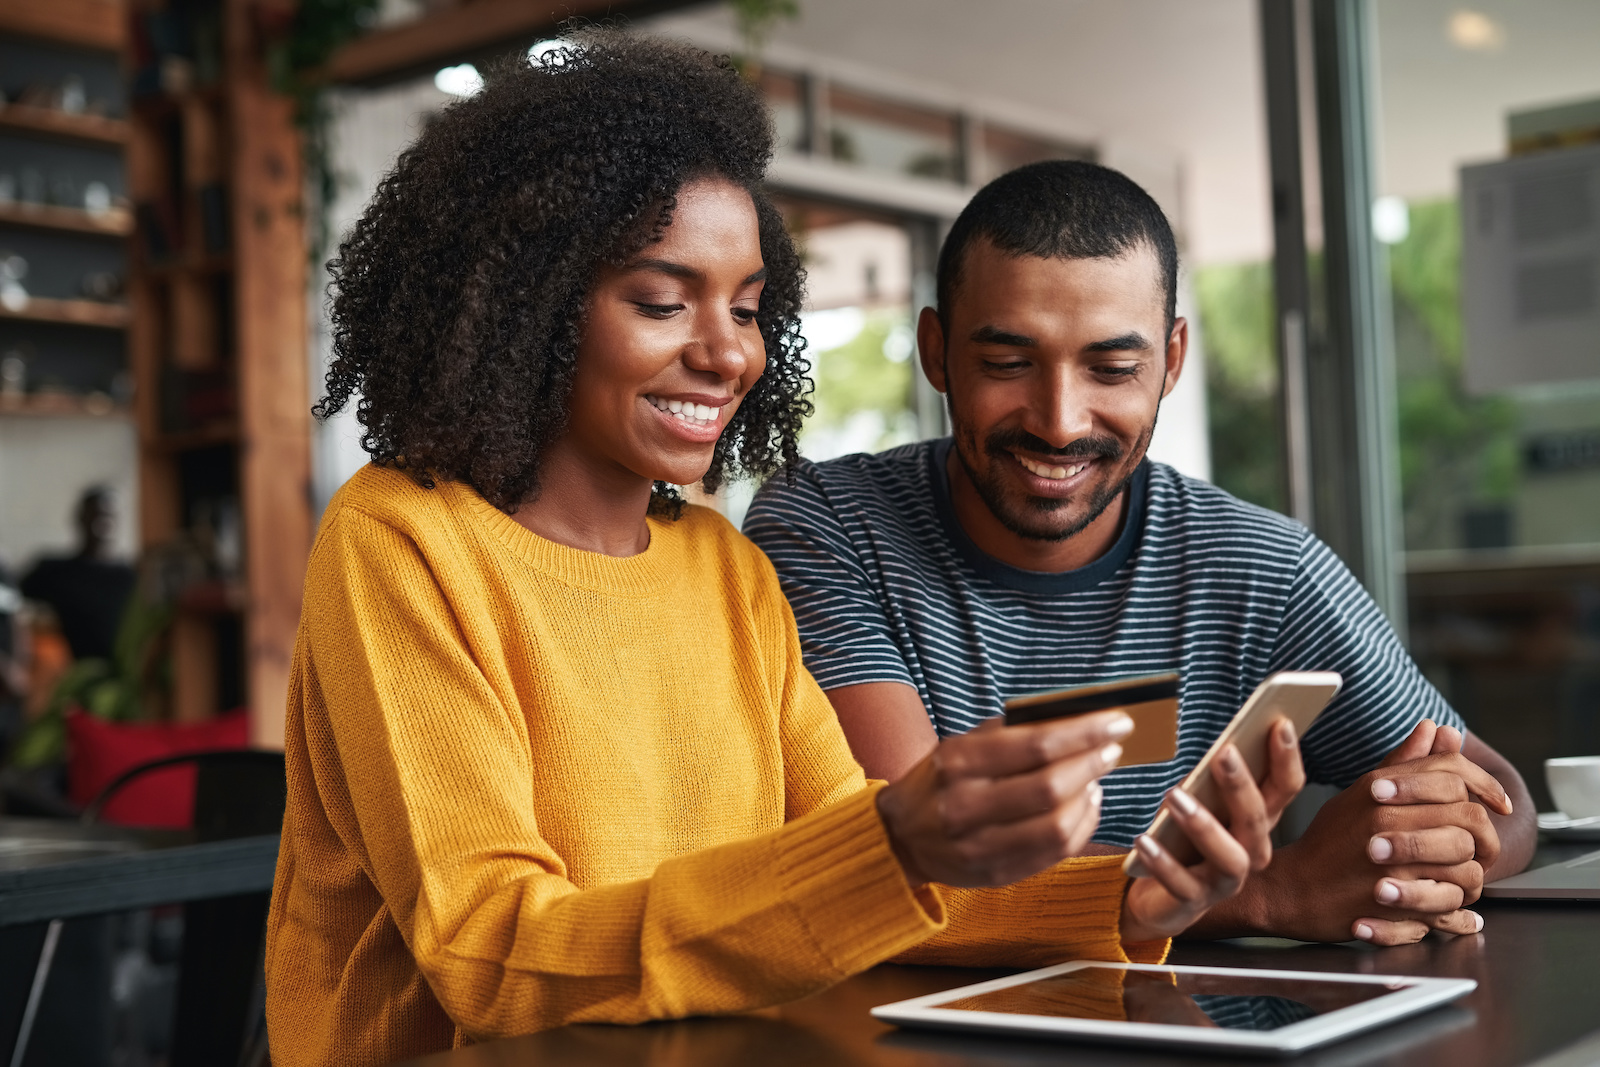 Credit card debt relief: A happy couple hold a credit card and check their balance on a phone